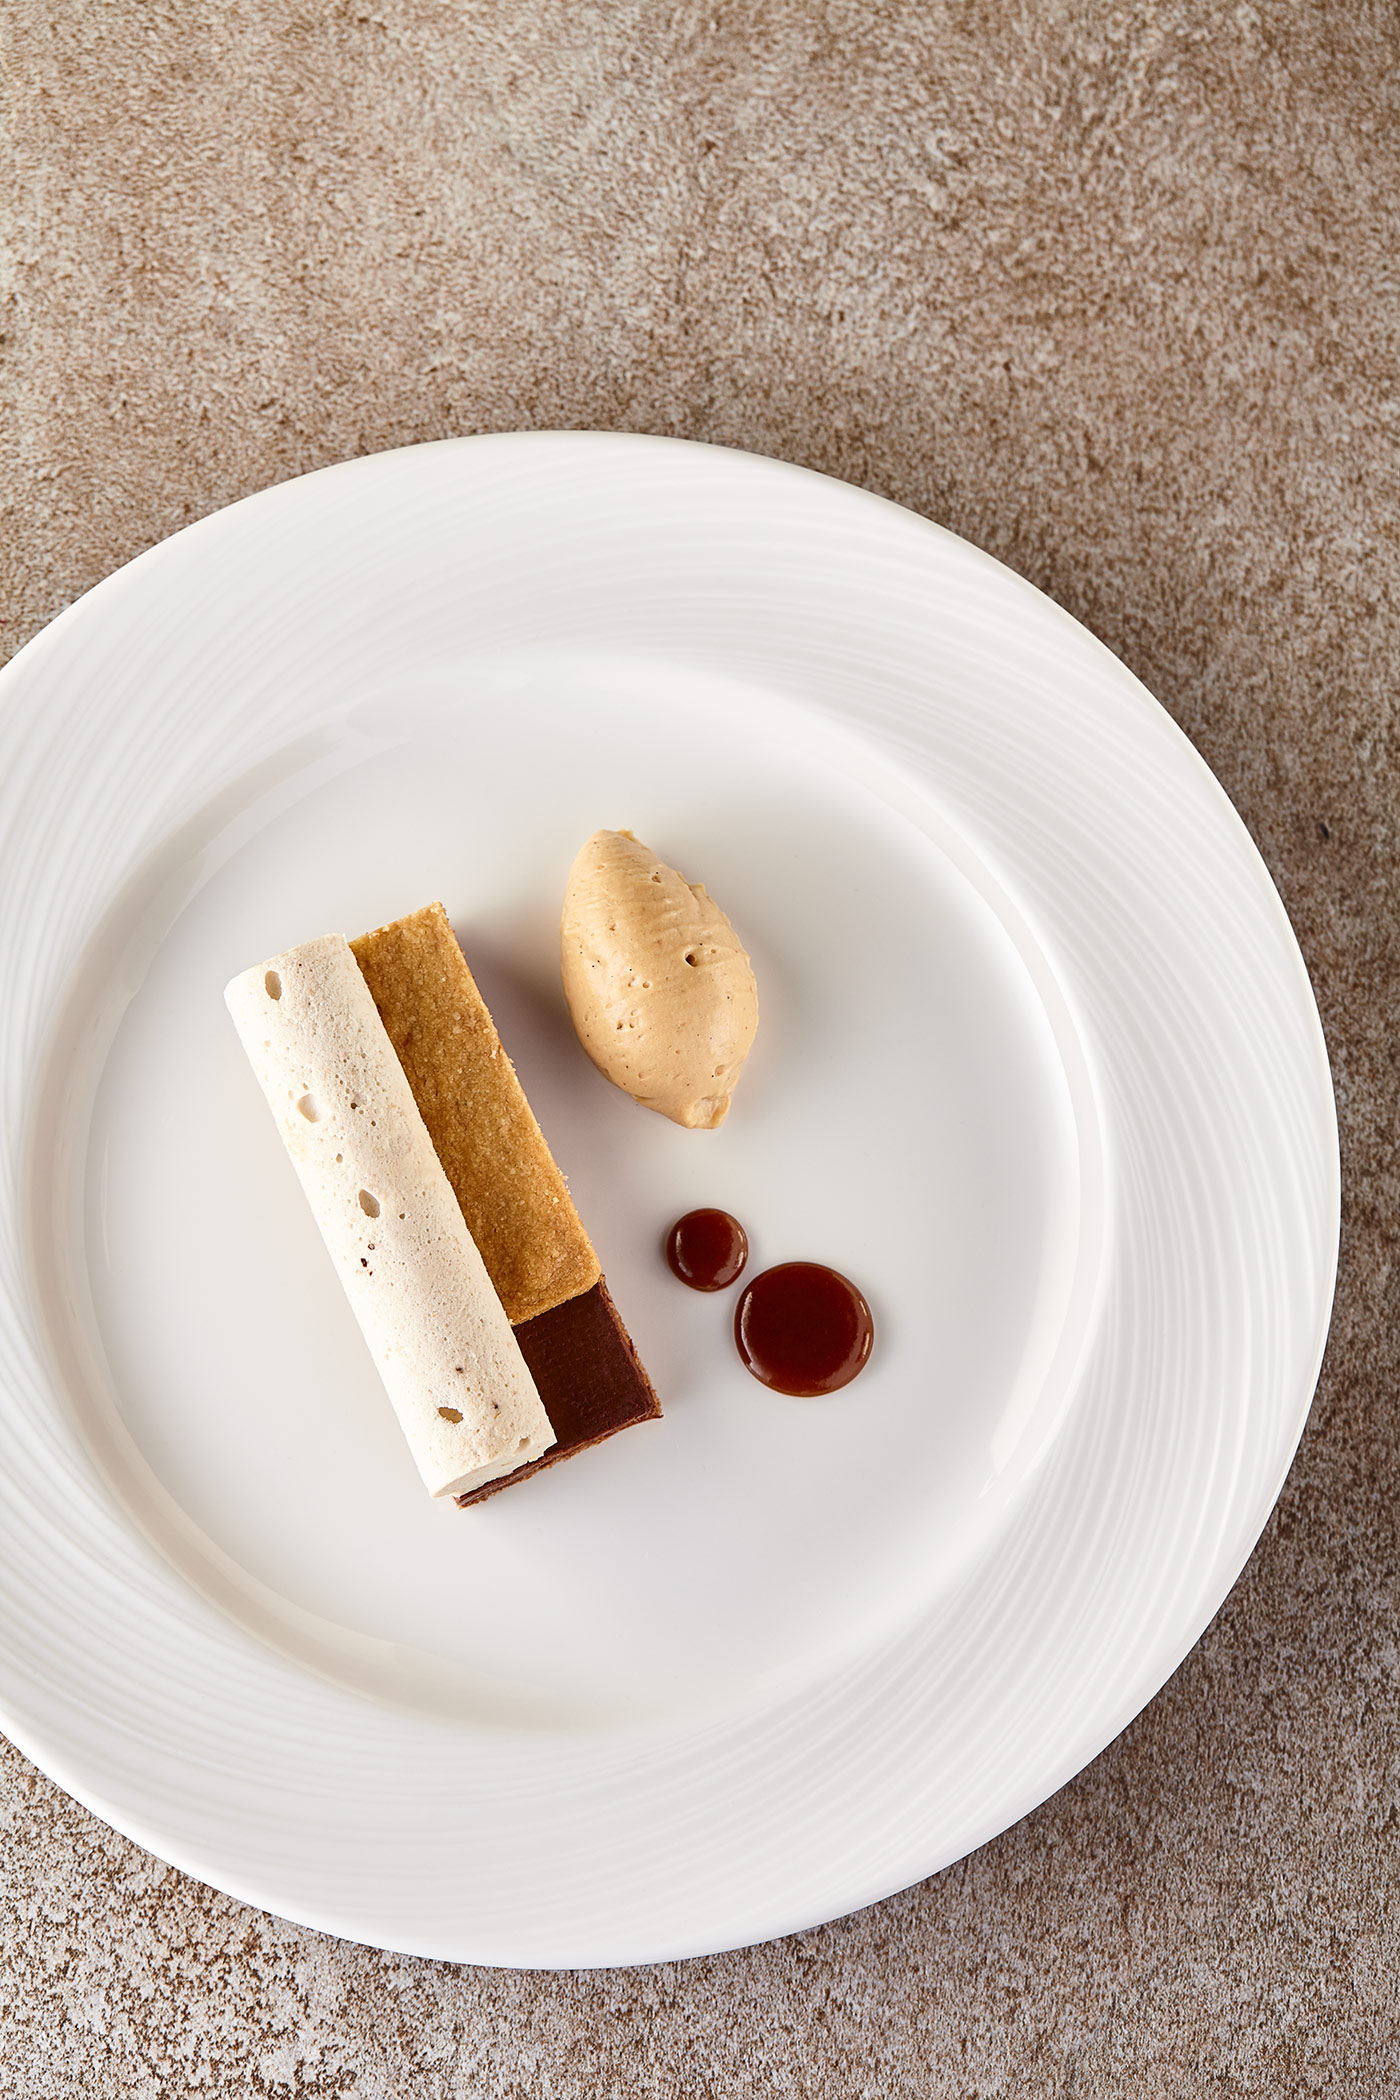 Caramel Dessert, Glasgow Science Centre, restaurant food photography